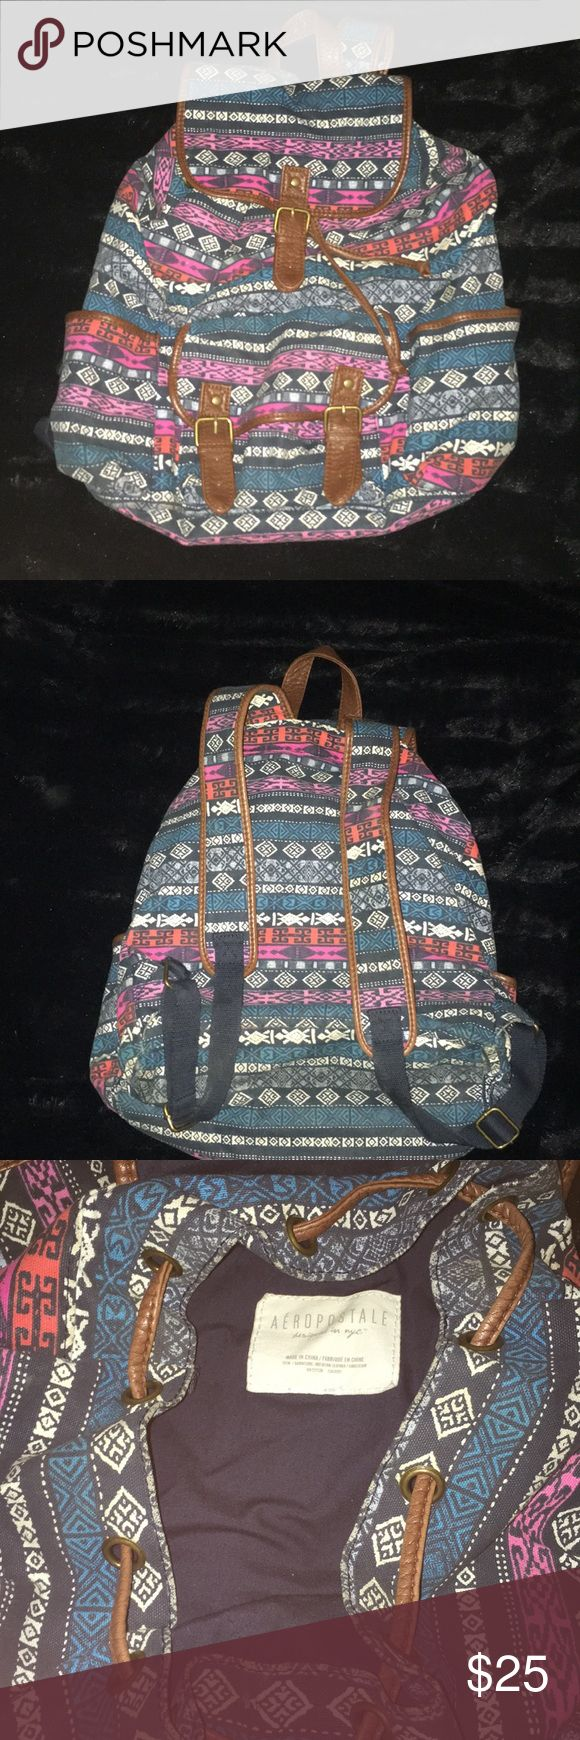 Aeropostale Aztec Bag Have had for a long time and used for a while but not recently, no signs of wear, it's in great condition!! Only noticeable thing is the color has faded just a little (I think??? Been in my closet for a year) Aeropostale Bags